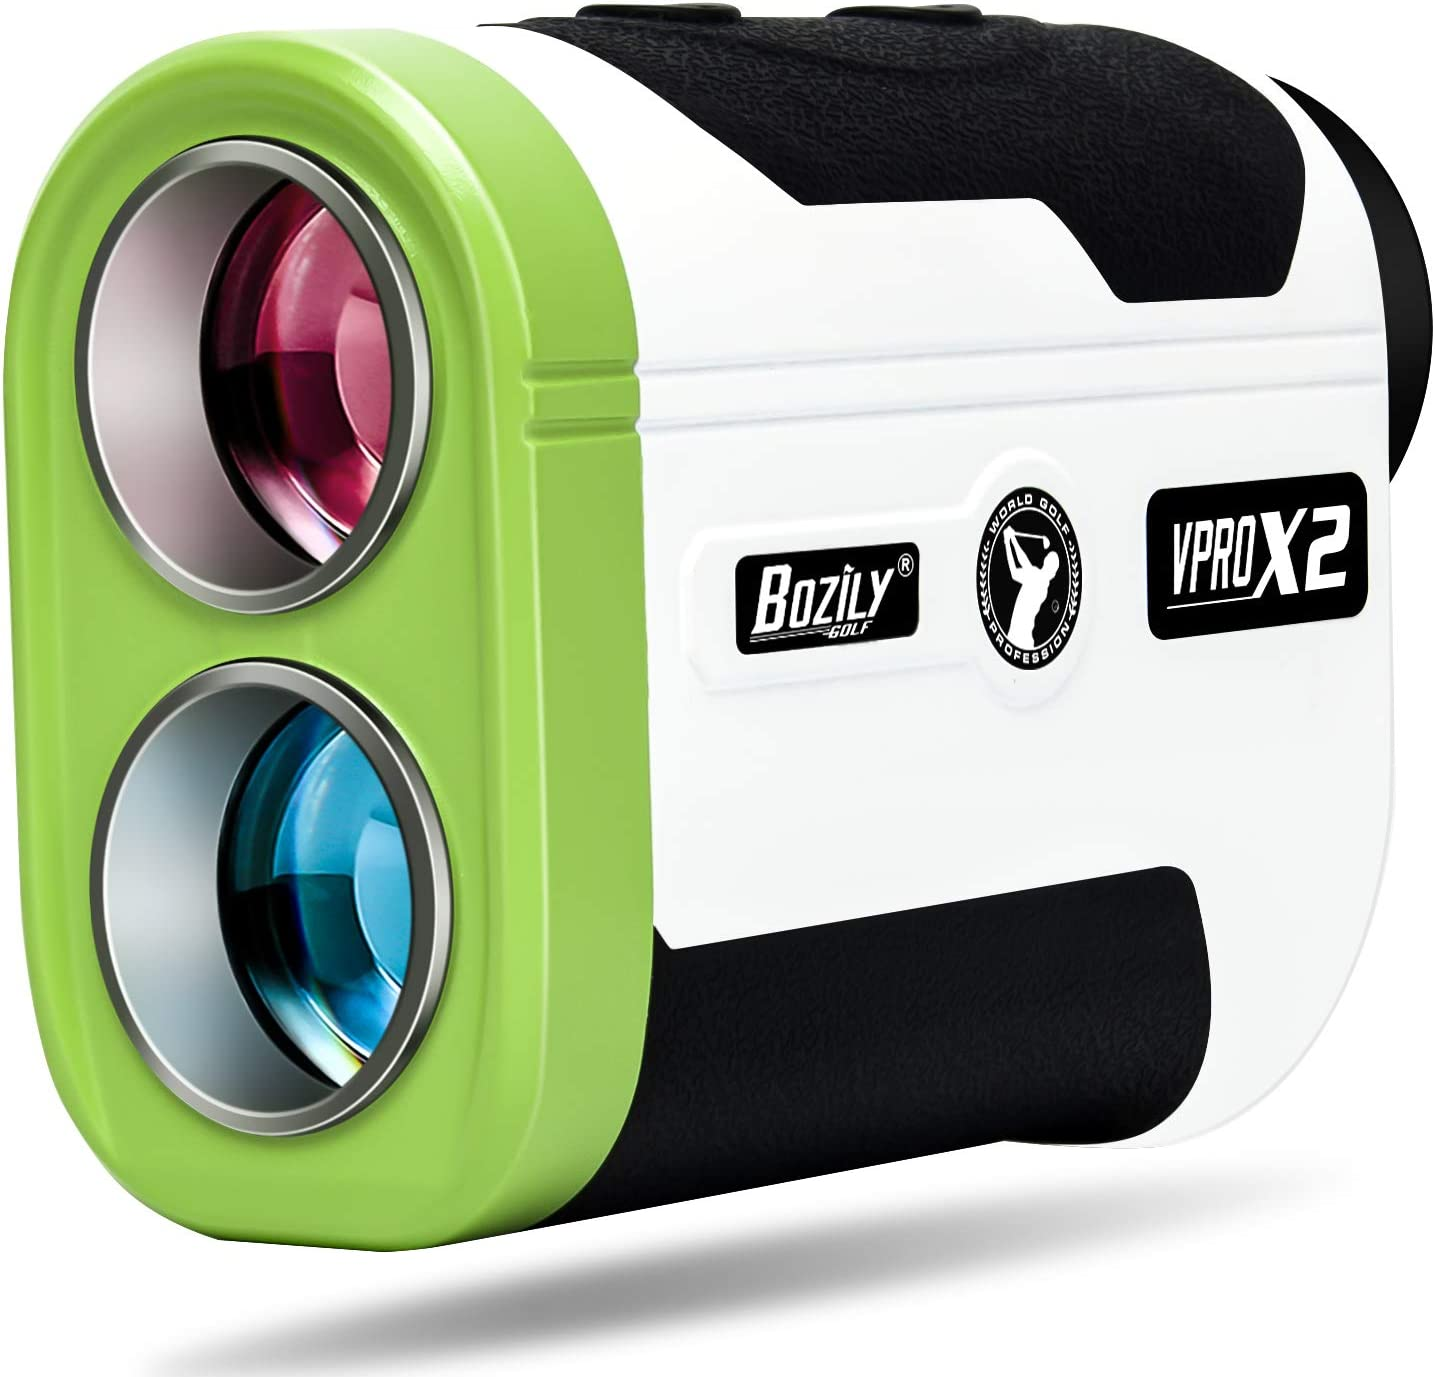 Bozily Golf Rangefinder 6X Laser Range Finder 1500 Yards with Slope ON/Off,2 Scan Modes Flag-Lock Tech with Vibration,Continuous Scan Support-with Battery